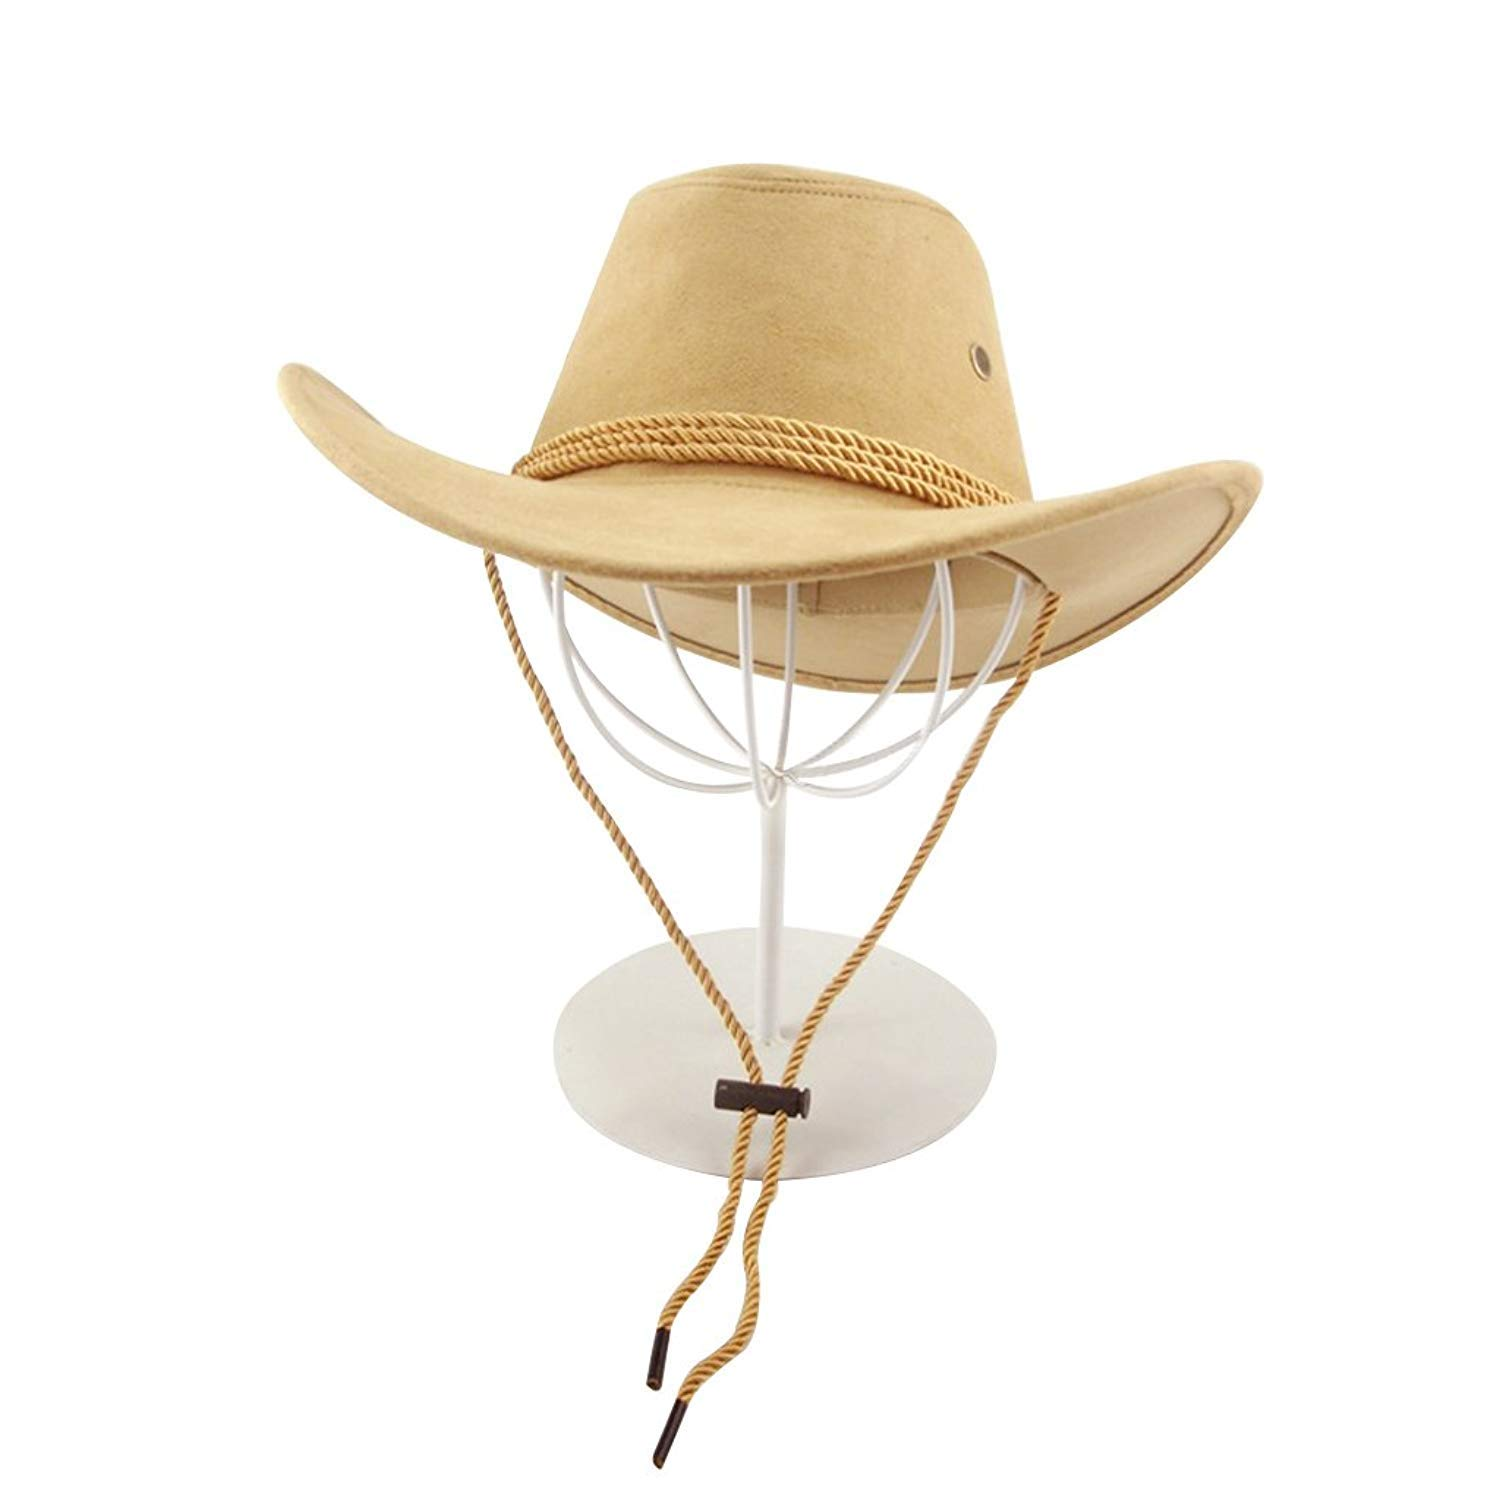 Beige 1 Pcs Western Cowboy Hat Casual Wide Brim Sunhat for Spring Summer Unisex